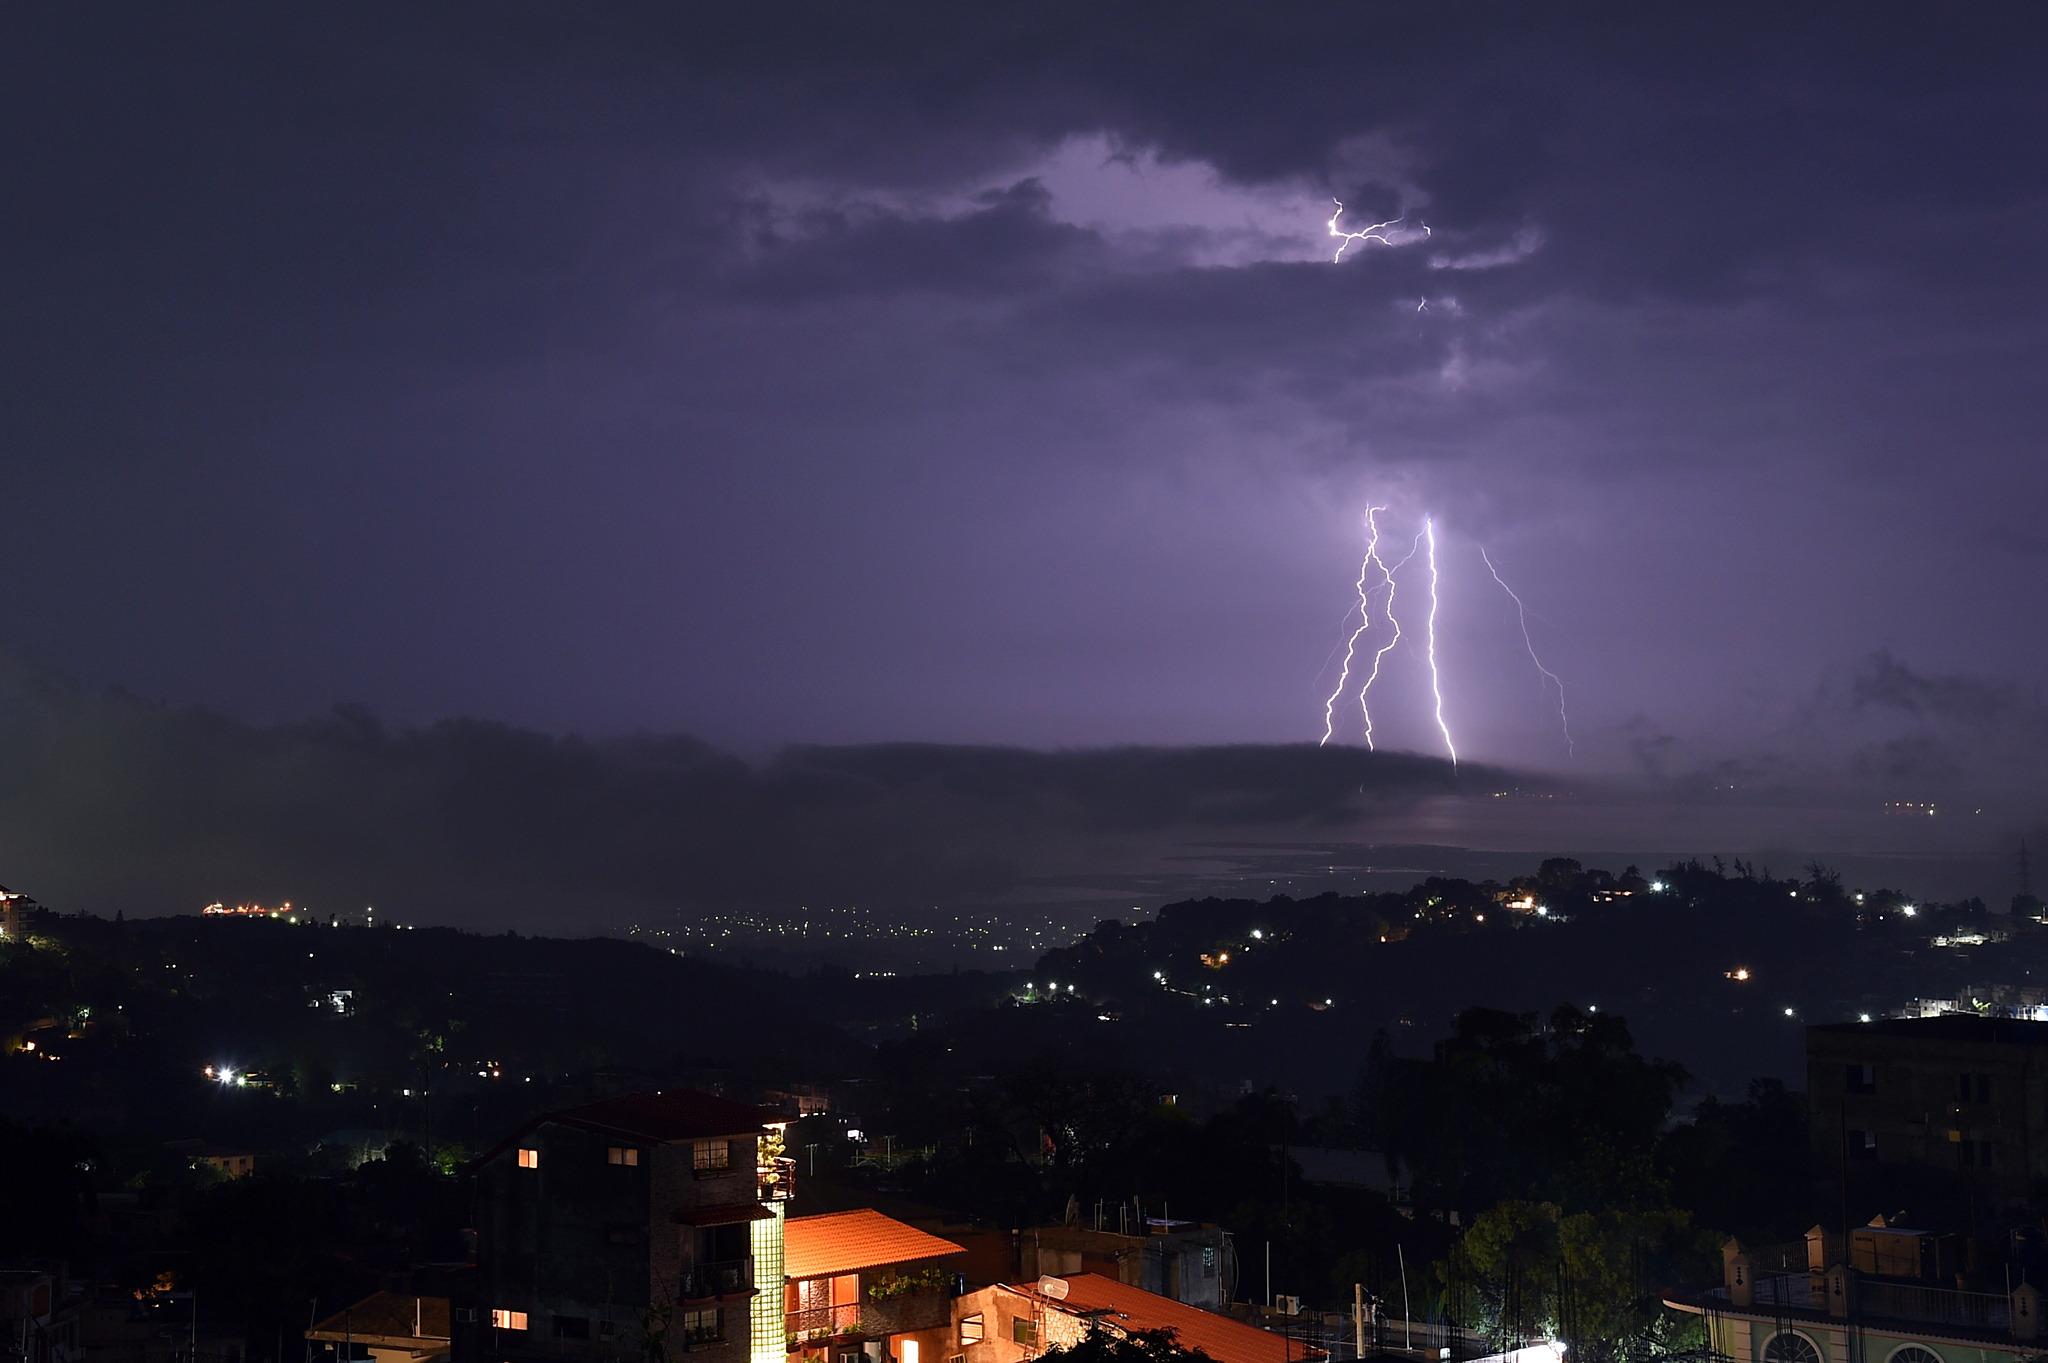 Lightning strikes during an evening thun...Lightning strikes during an evening thunderstorm on August 23, 2015 in the Haitian capital Port-au-Prince. AFP PHOTO/HECTOR RETAMALHECTOR RETAMAL/AFP/Getty Images